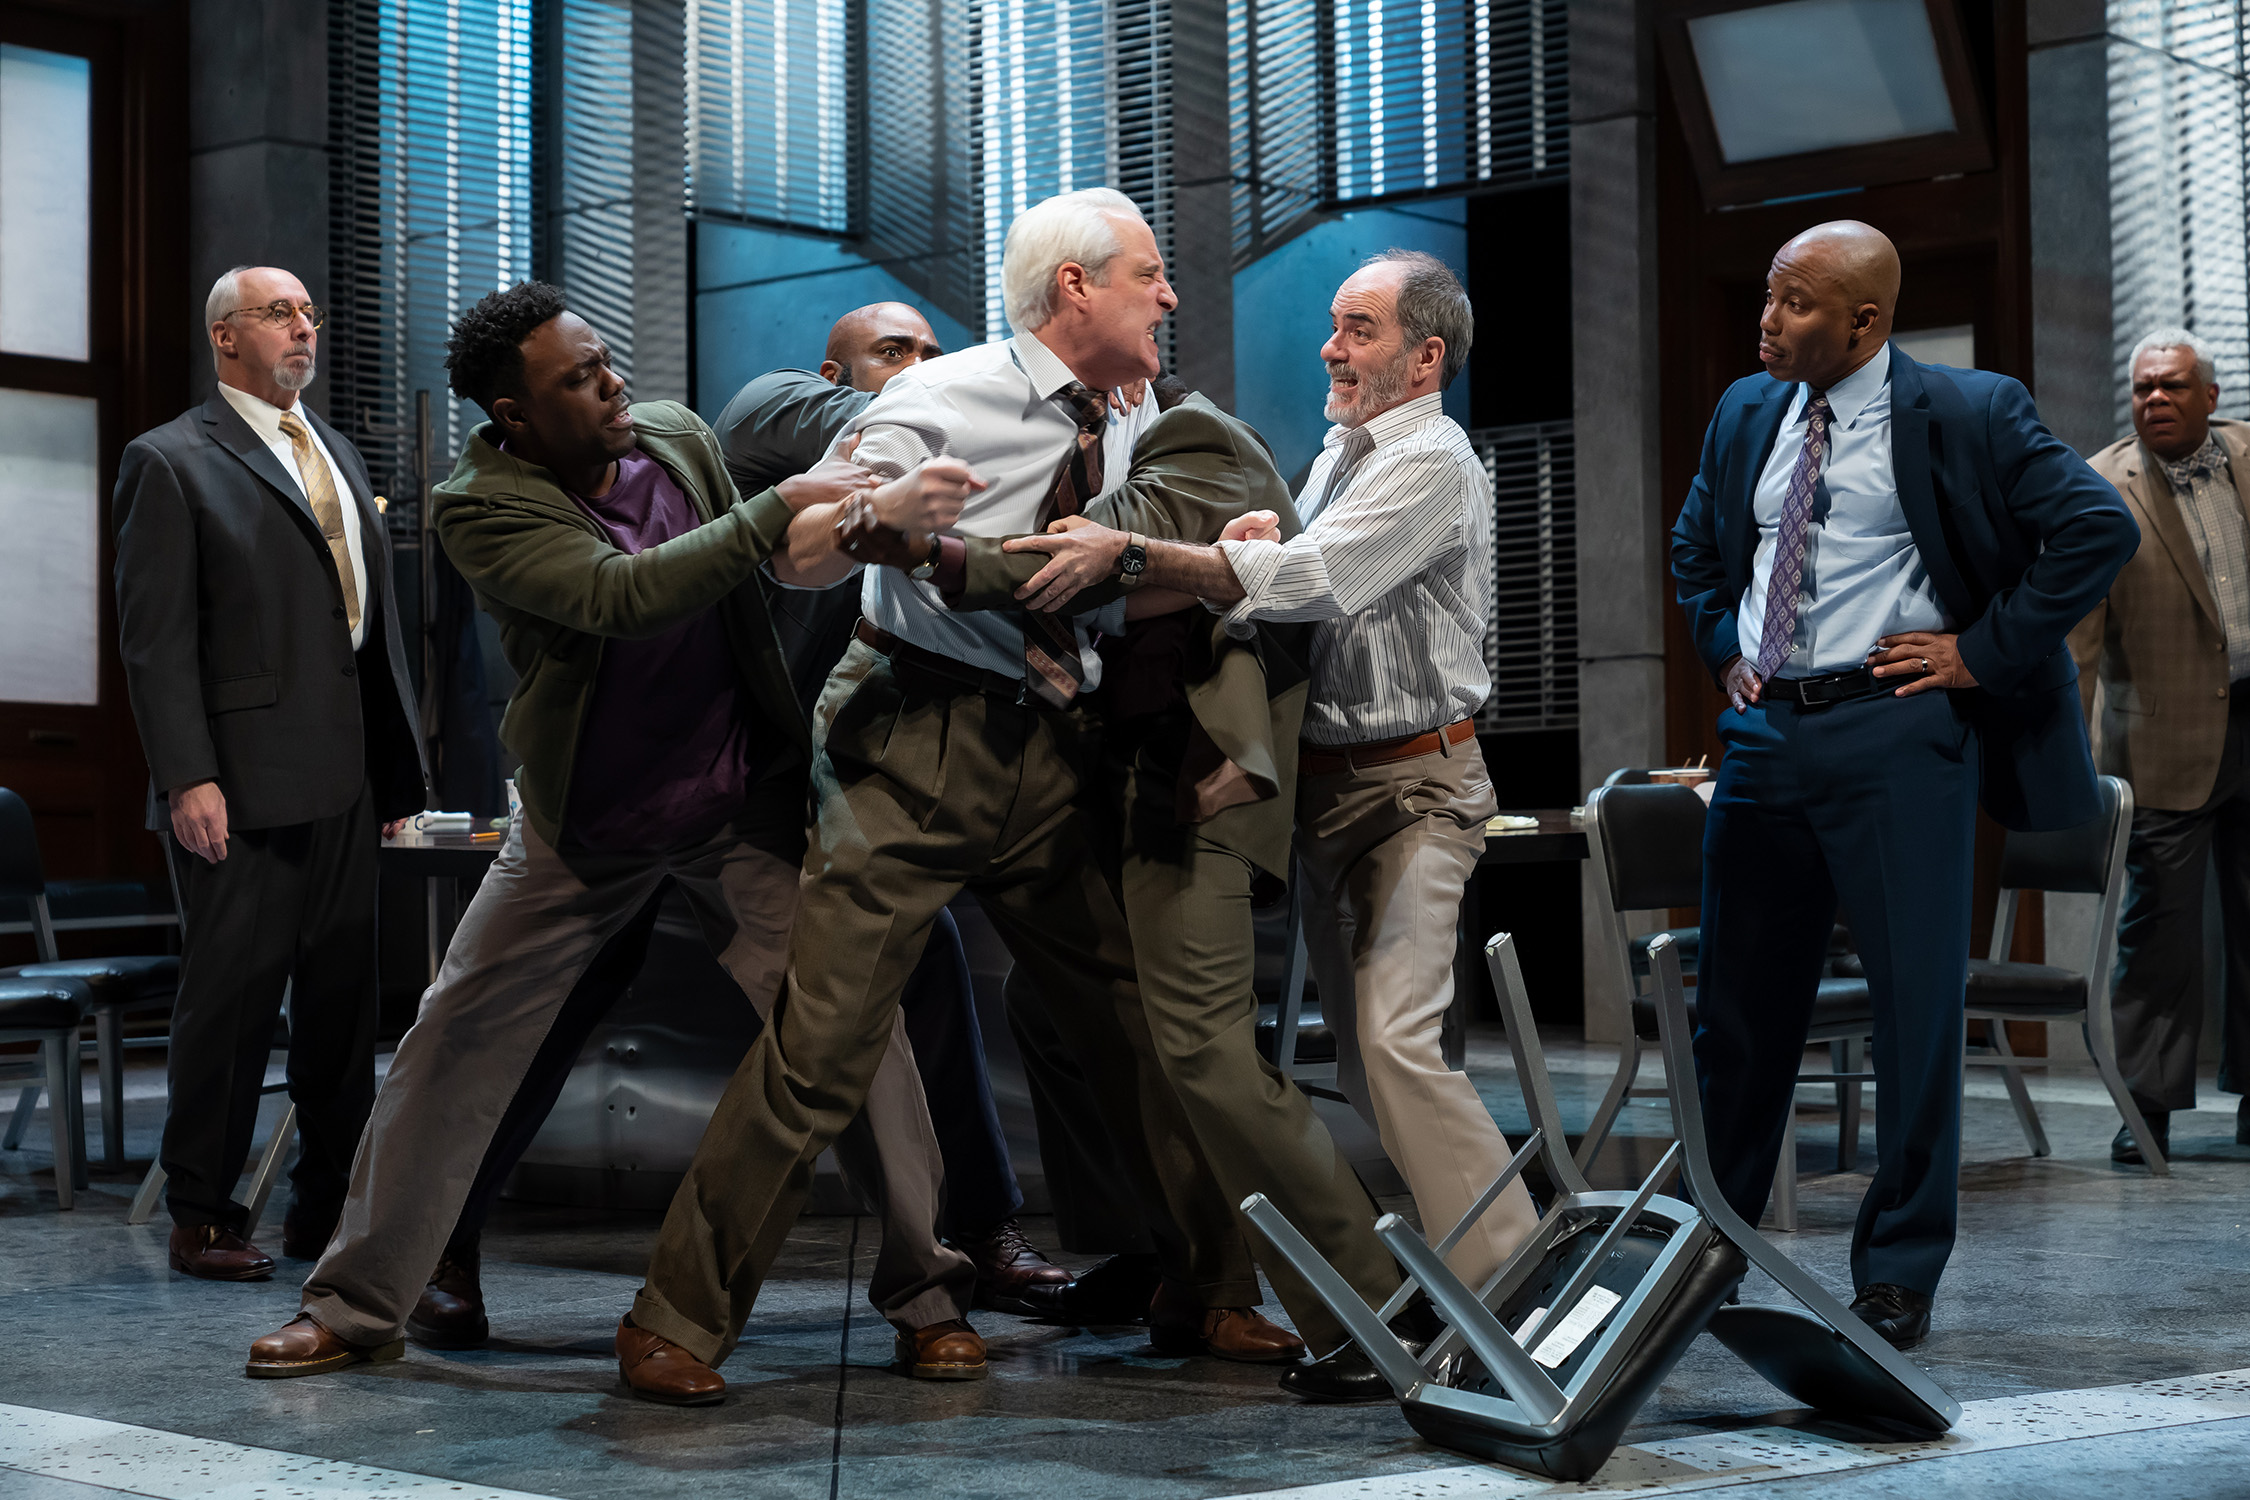 Four men physically restrain an angry man who lunges with fists clenched toward another man in a jury room. Image is from the Ford's Theatre 2019 production of Twelve Angry Men, directed by Sheldon Epps. Photo by Scott Suchman.